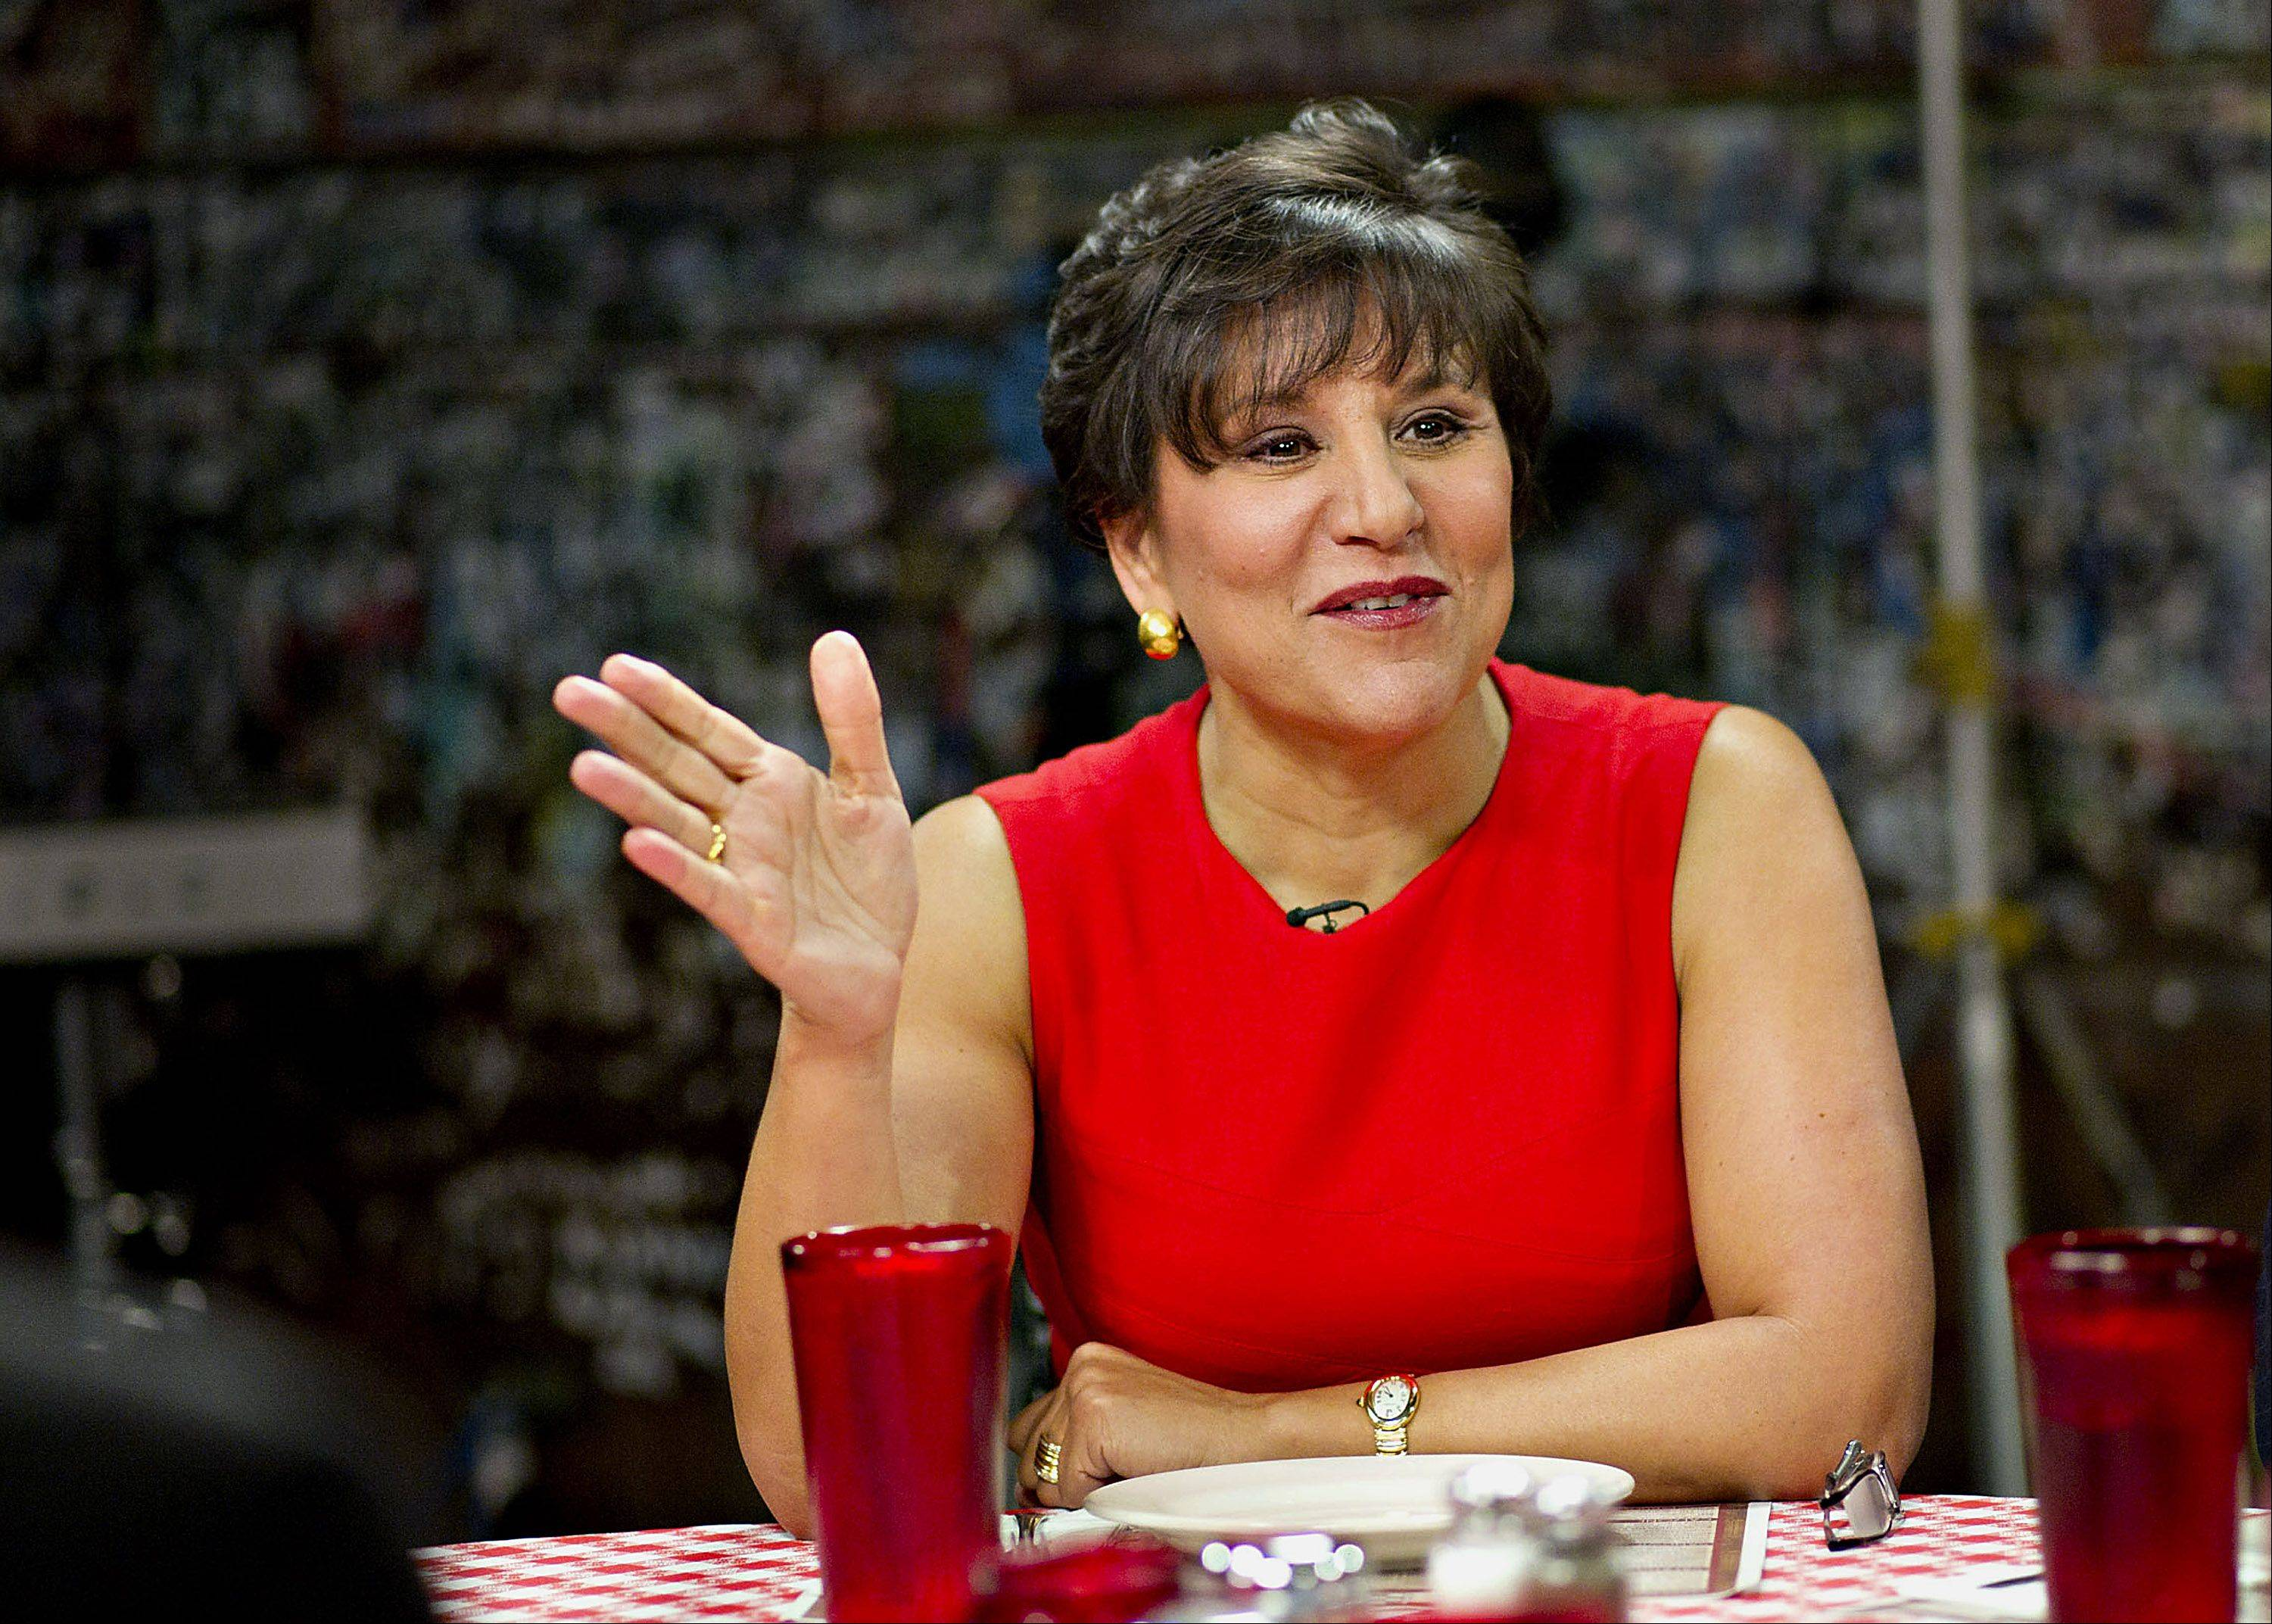 Penny Pritzker is Obama's final pick to fill vacancies among Cabinet secretaries in his second term. The Commerce post has been vacant since last summer, when former Secretary John Bryson resigned after he said he suffered a seizure that led to a series of traffic collisions.